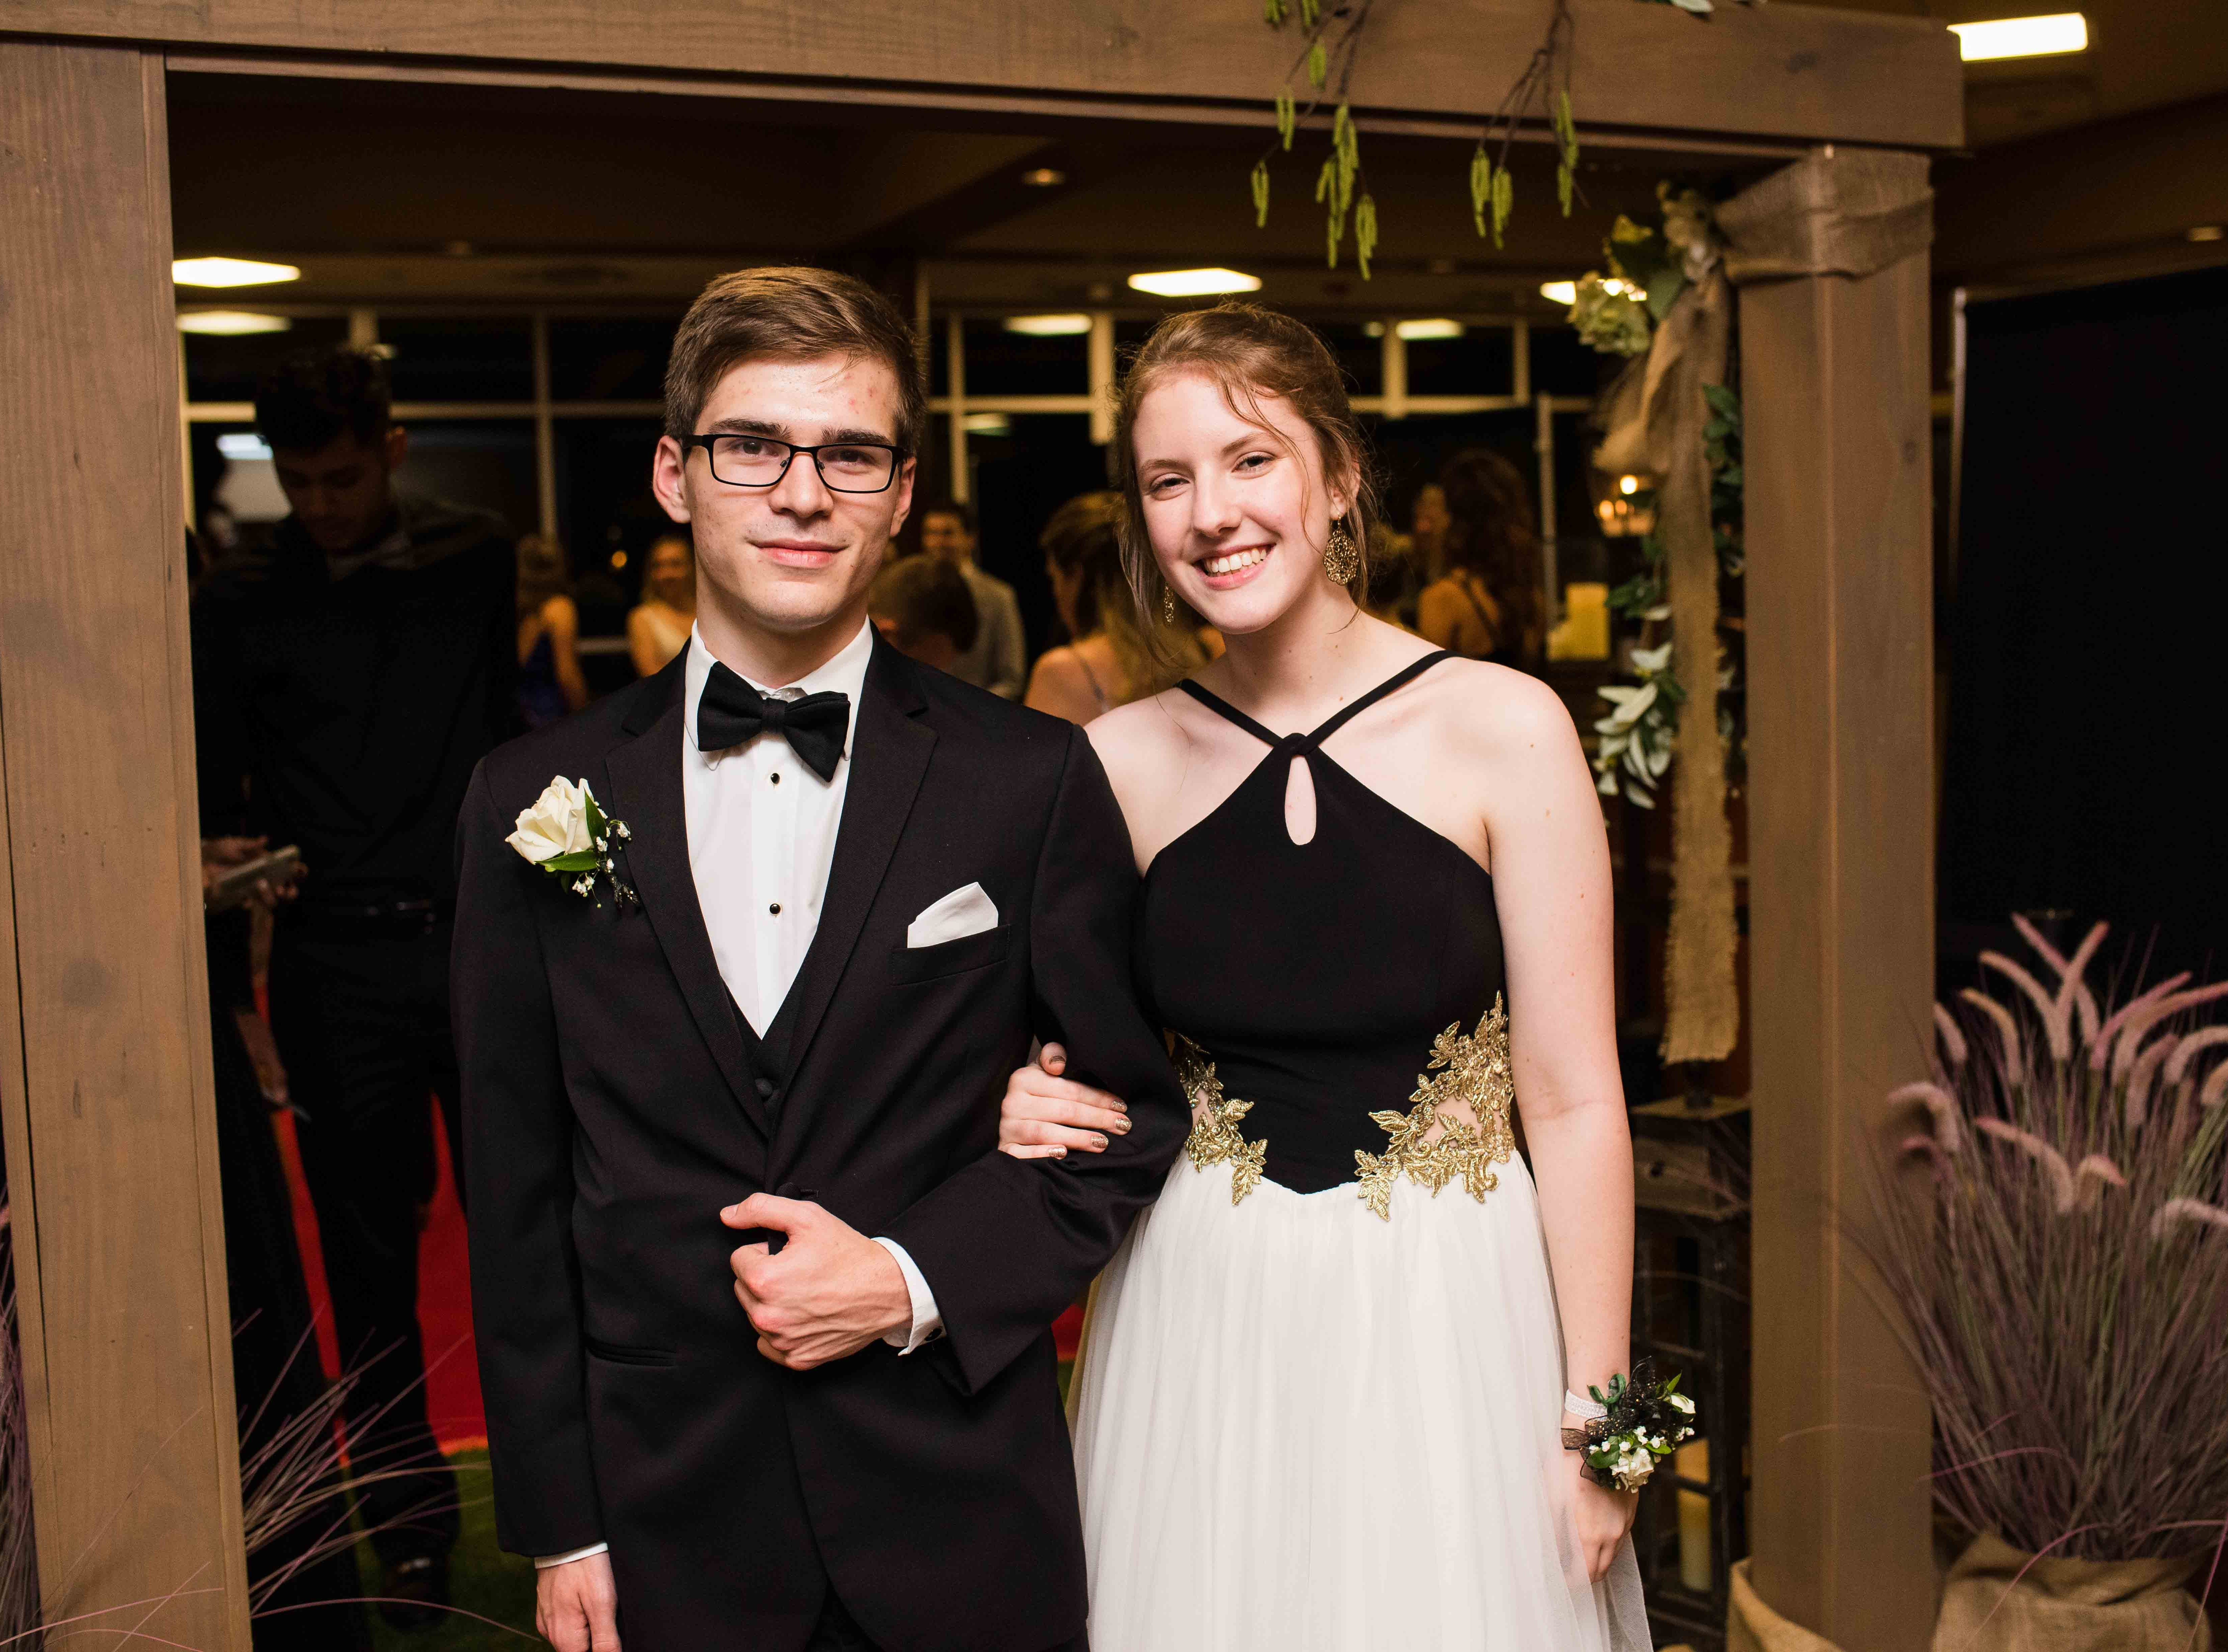 John Shadix and Margaret Smith at Rossview High School prom Saturday night at Valor Hall in Oak Grove, Ky.